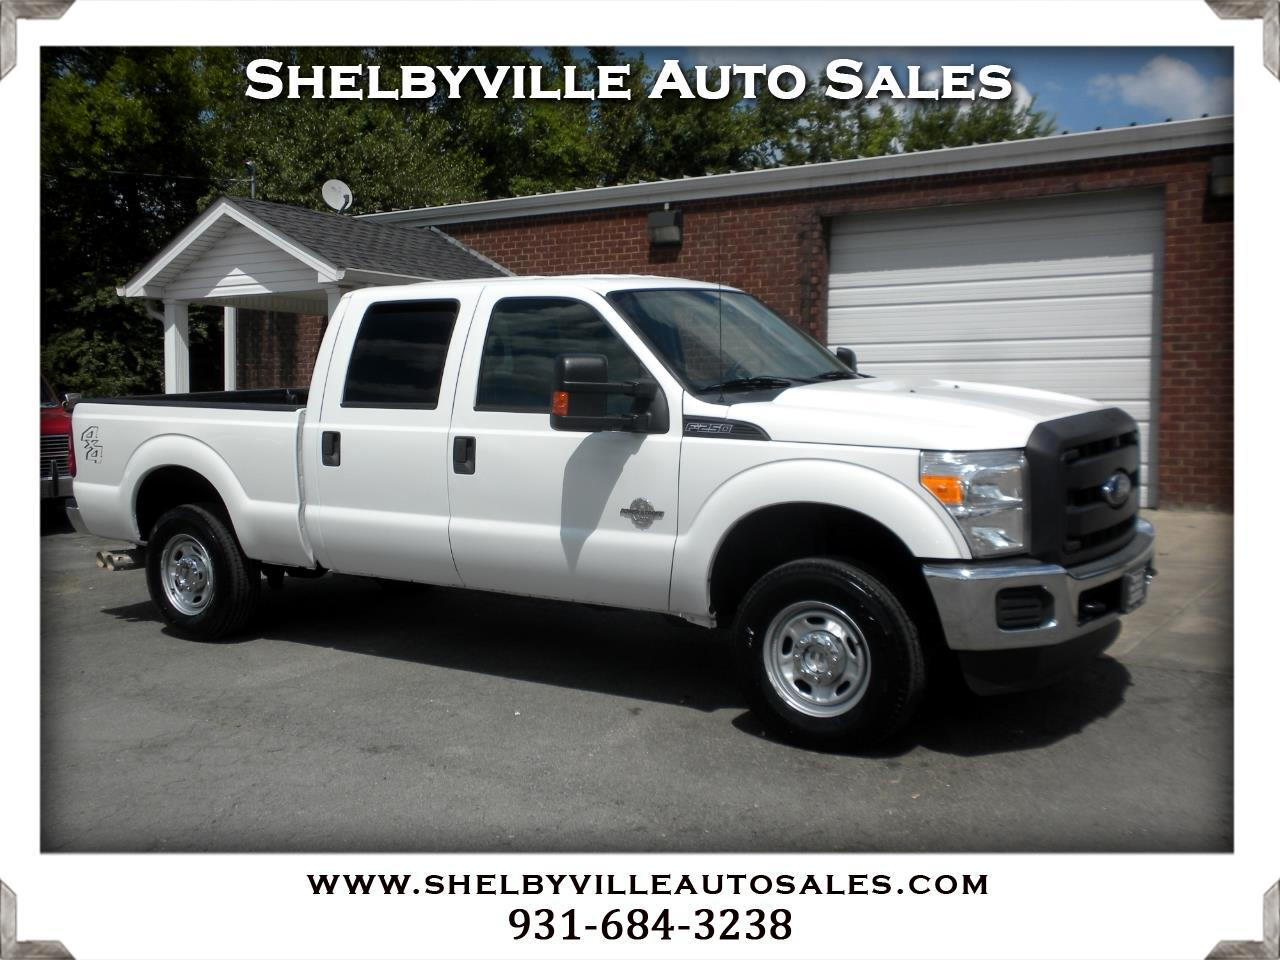 2015 Ford Super Duty F-250 SRW 4X4 Crew Cab XL